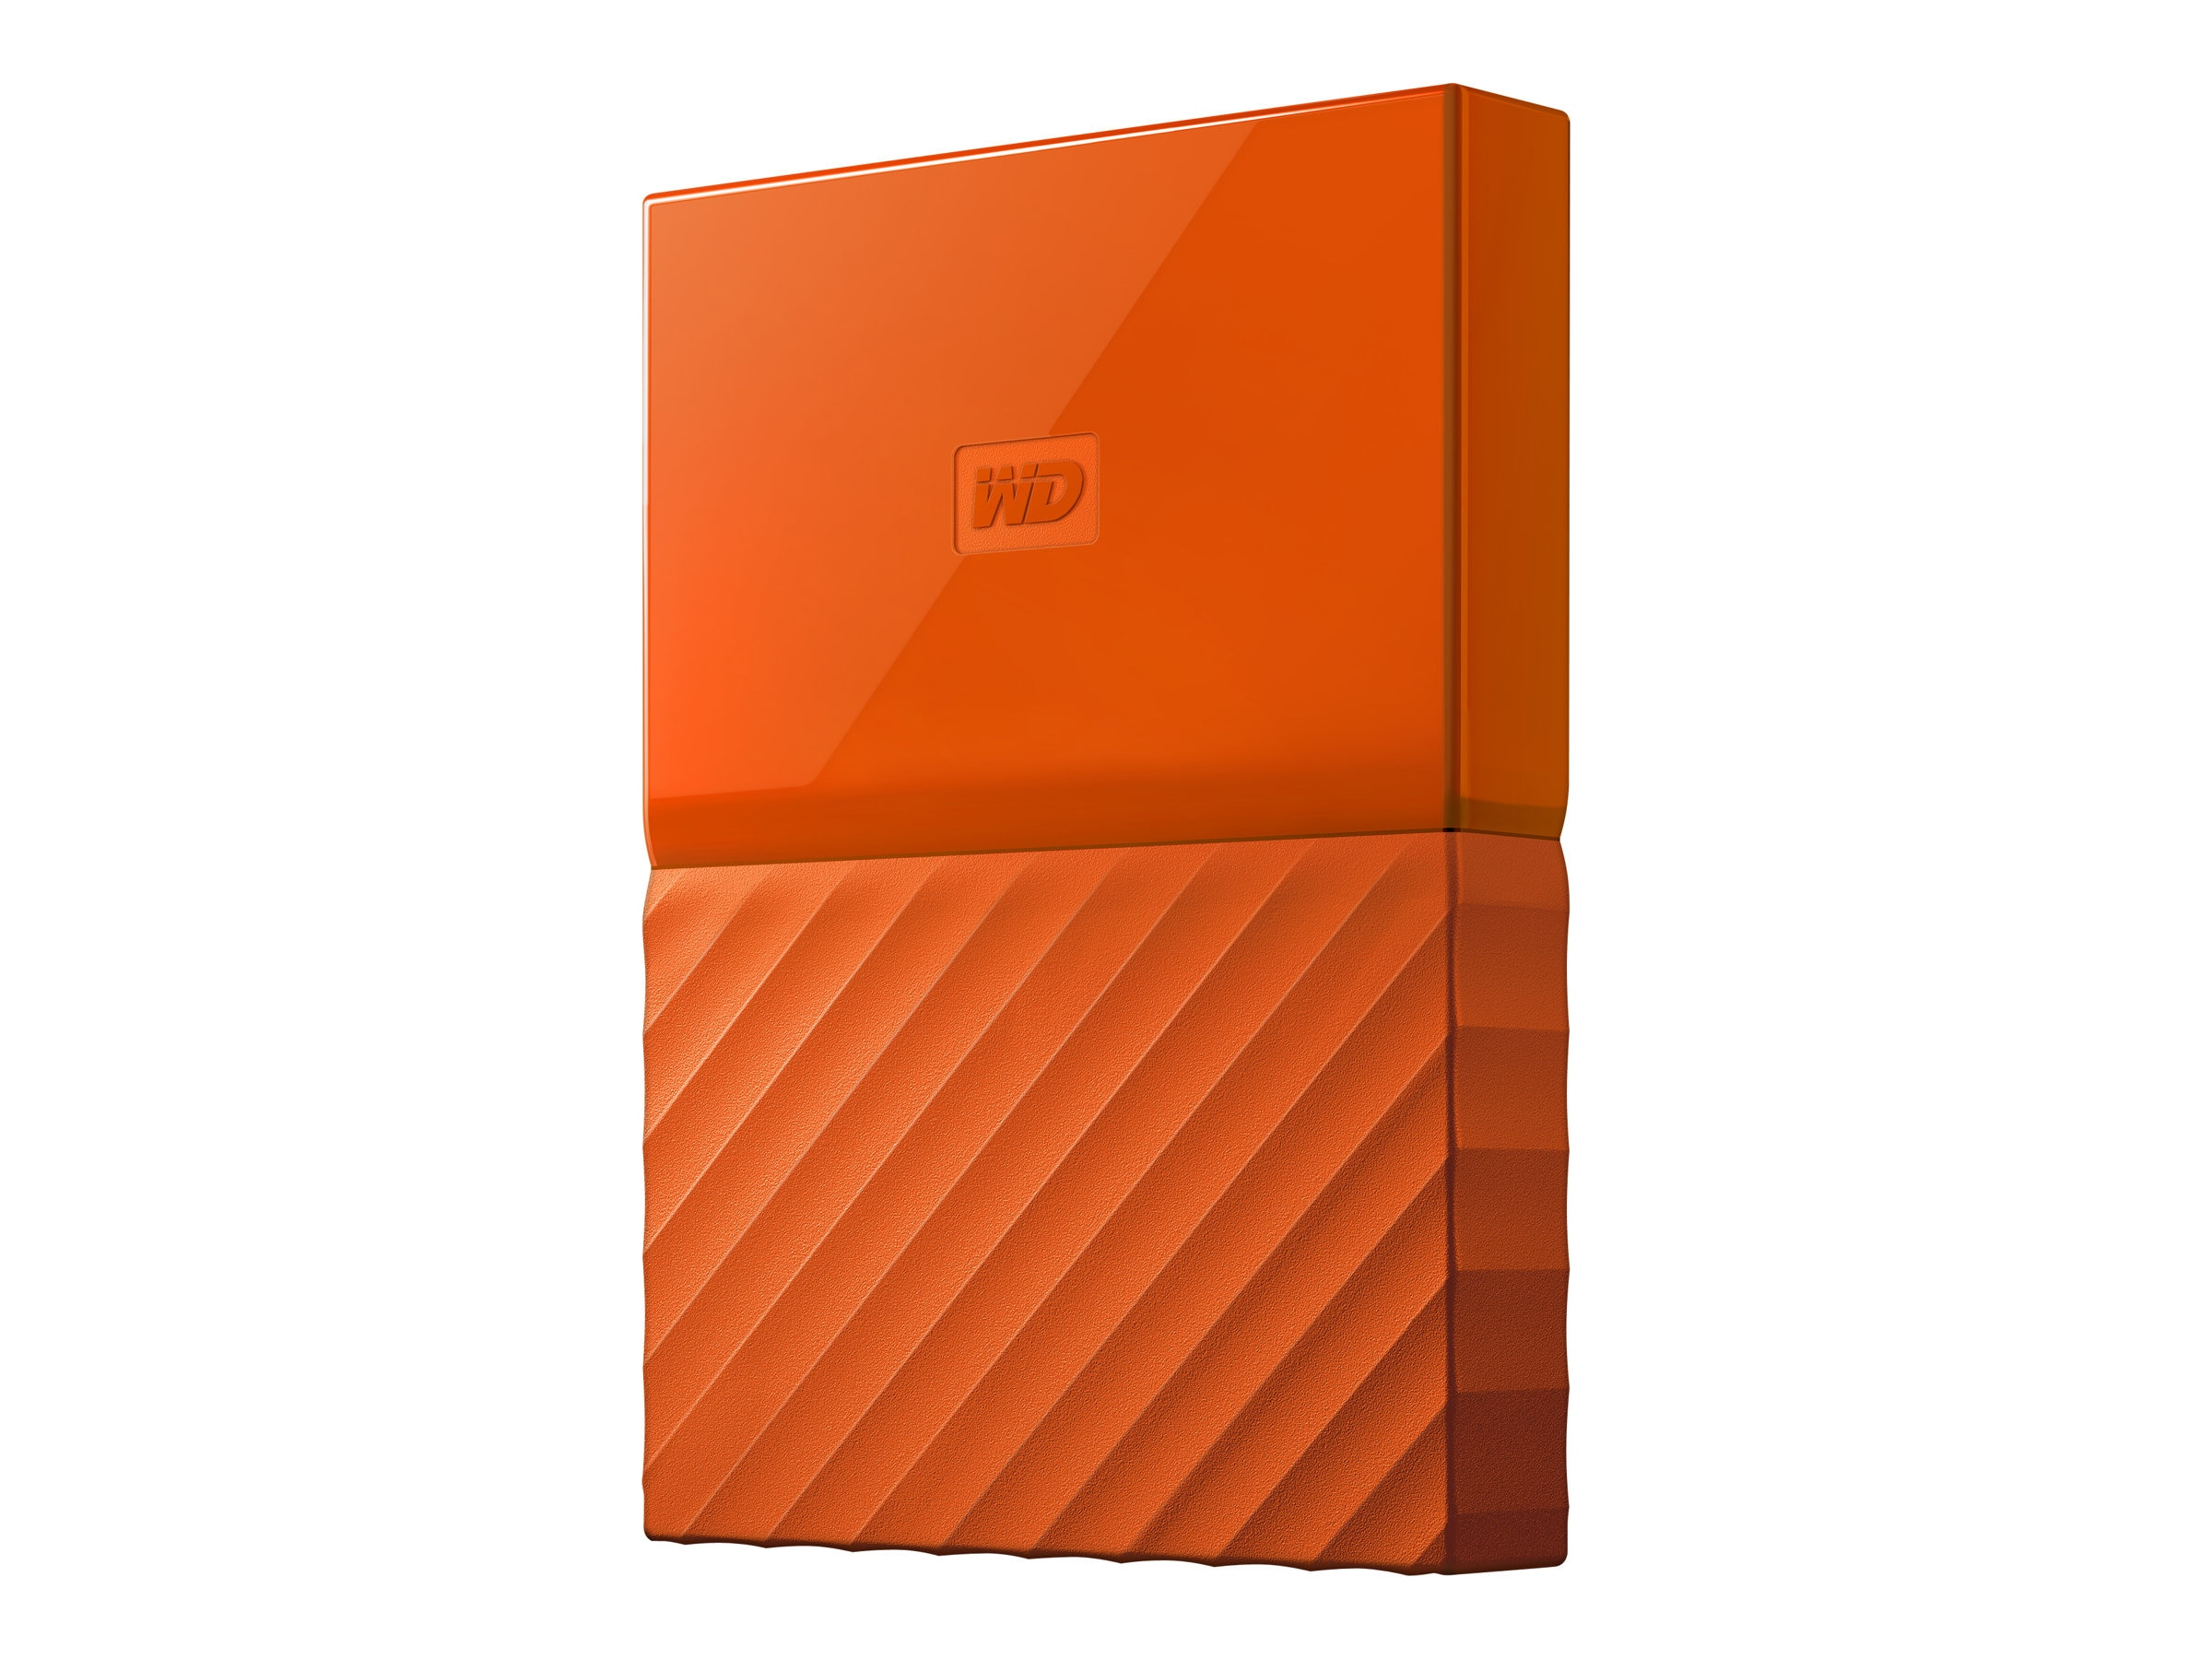 WD 2TB My Passport Ultra, Orange, WDBYFT0020BOR-WESN